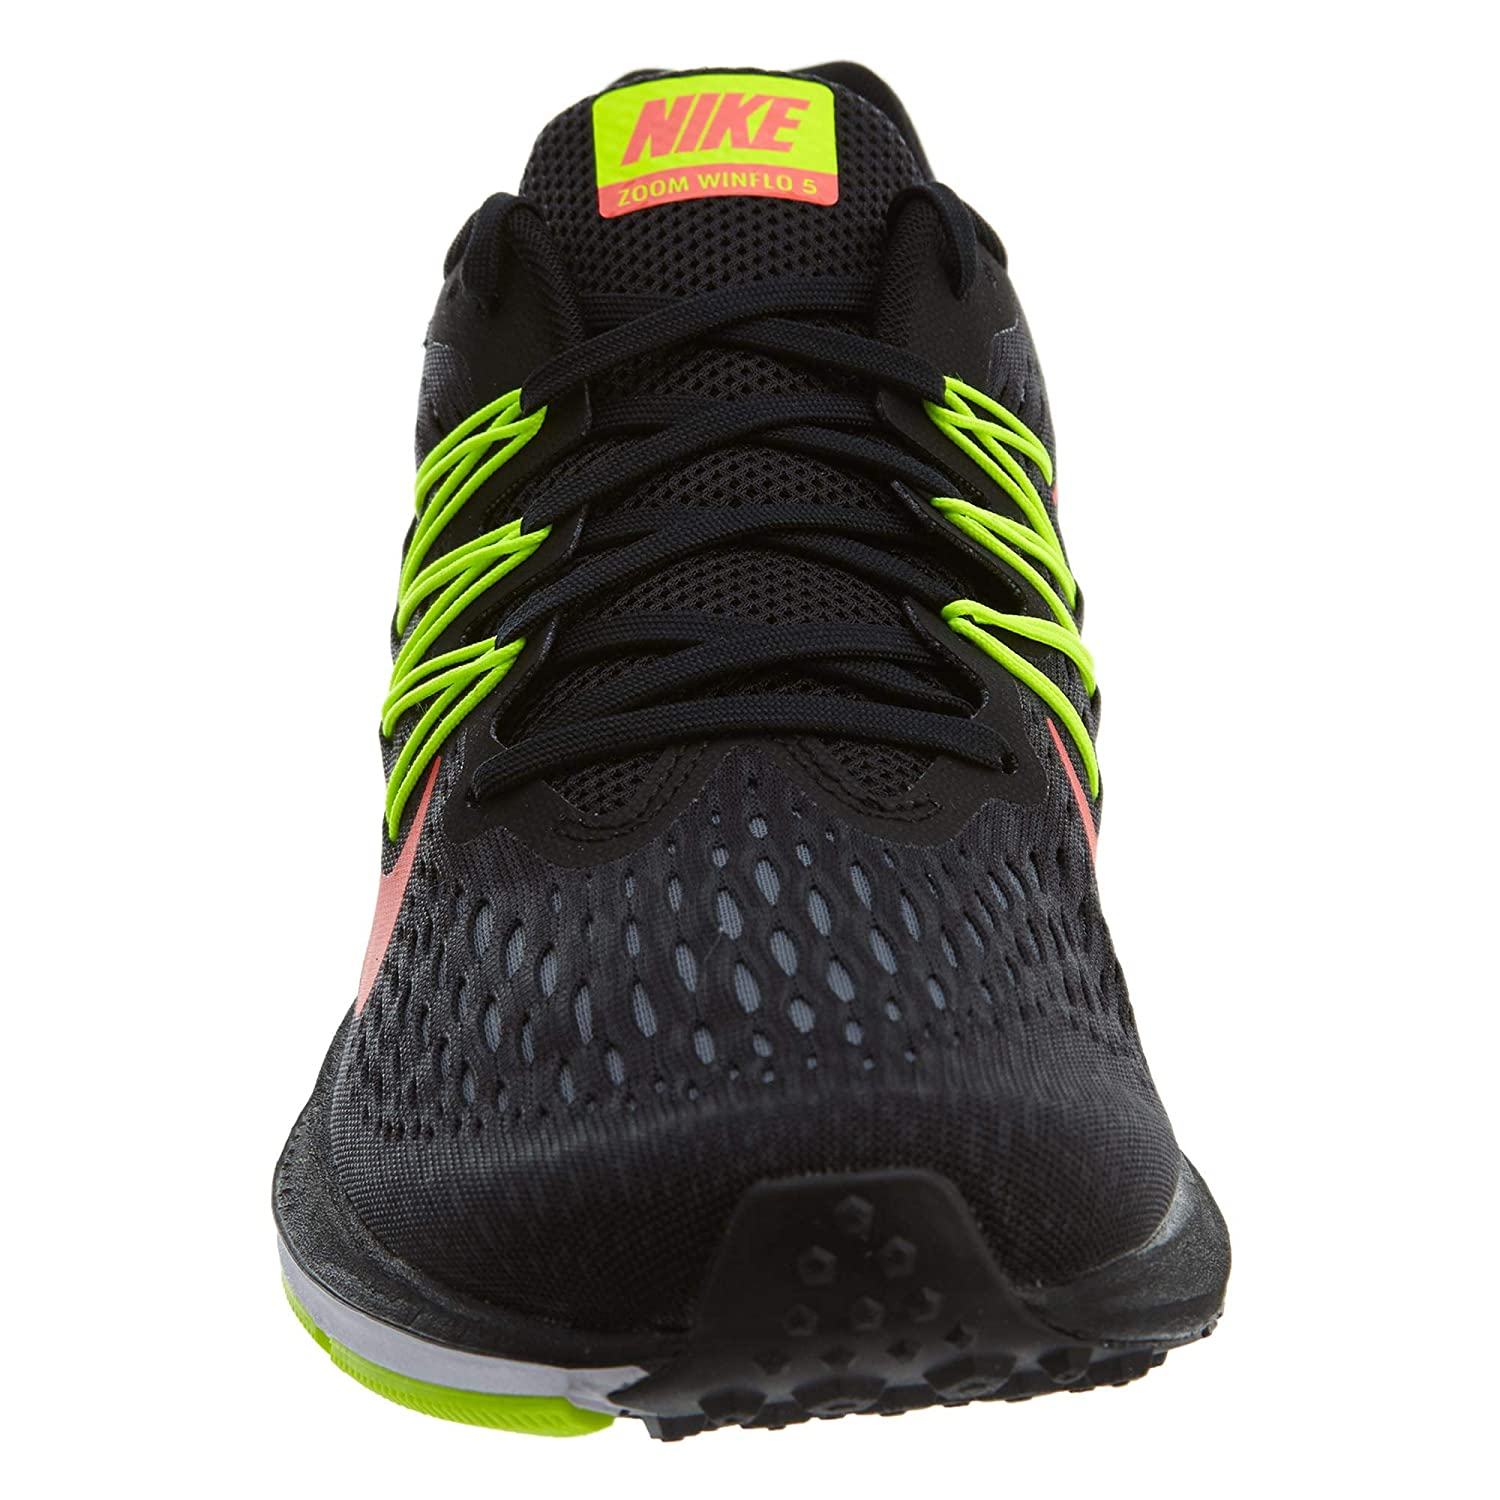 separation shoes 4db32 628f9 Amazon.com   Nike Men s Air Zoom Winflo 5 Running Shoe   Shoes